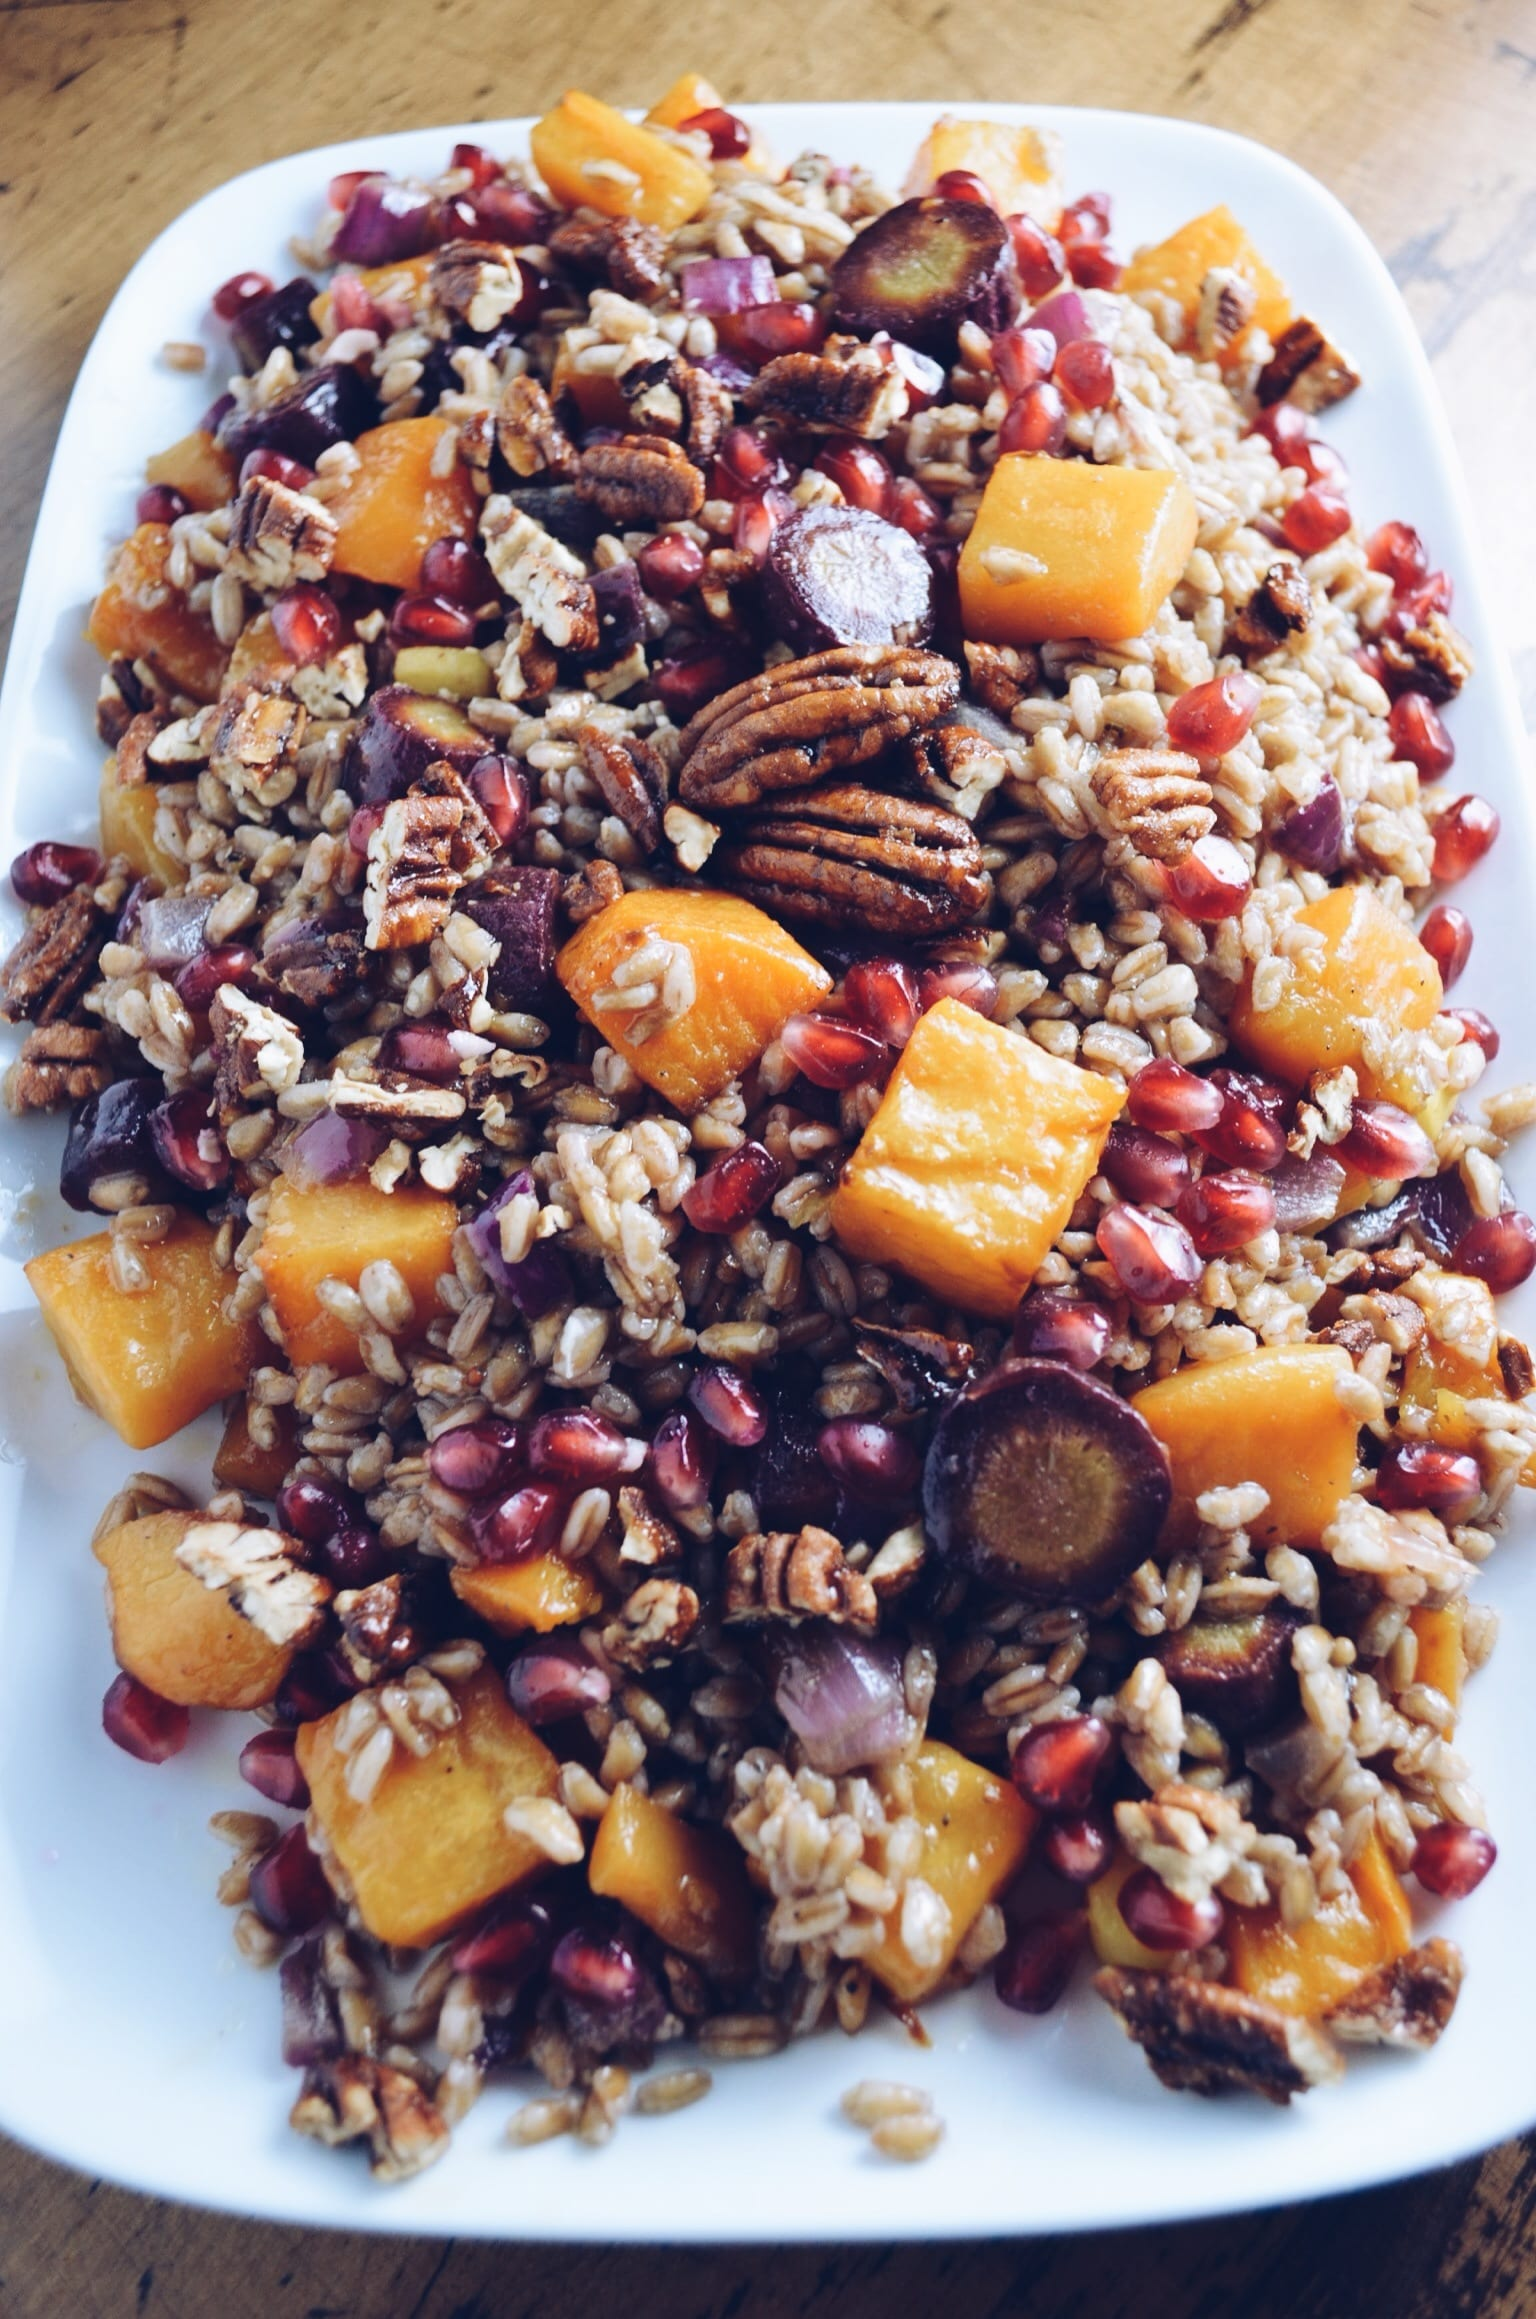 Farro Salad With Pomegranate Vinaigrette, Roasted Winter Vegetables, and Candied Pecans